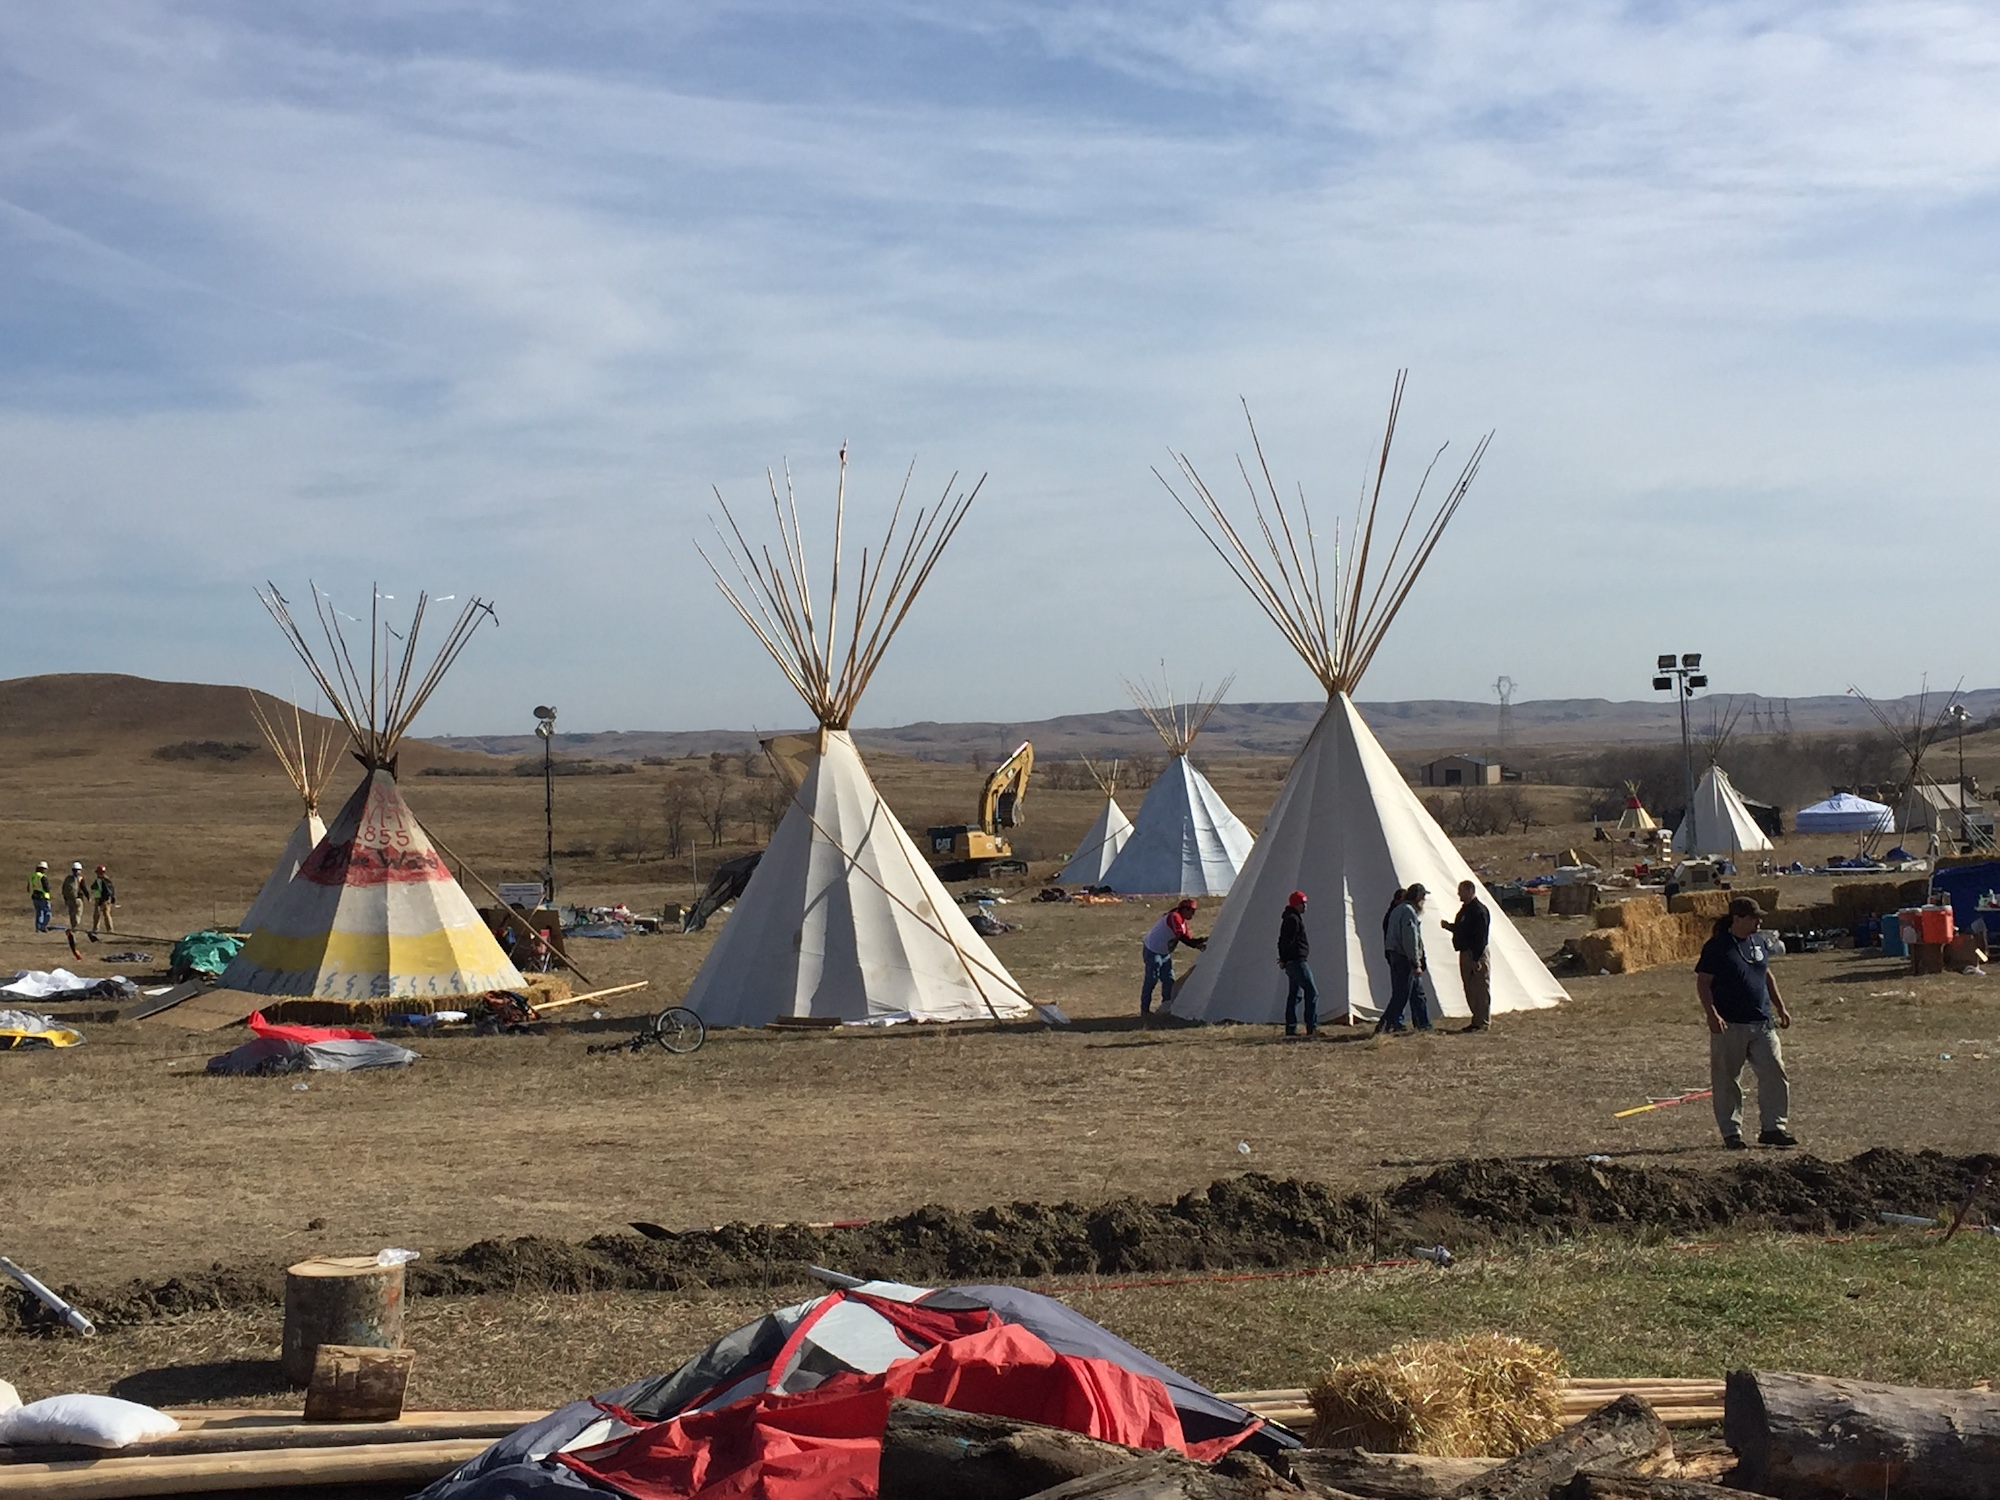 Bureau of Indian Affairs apprehended Dakota Access security guard with rifle